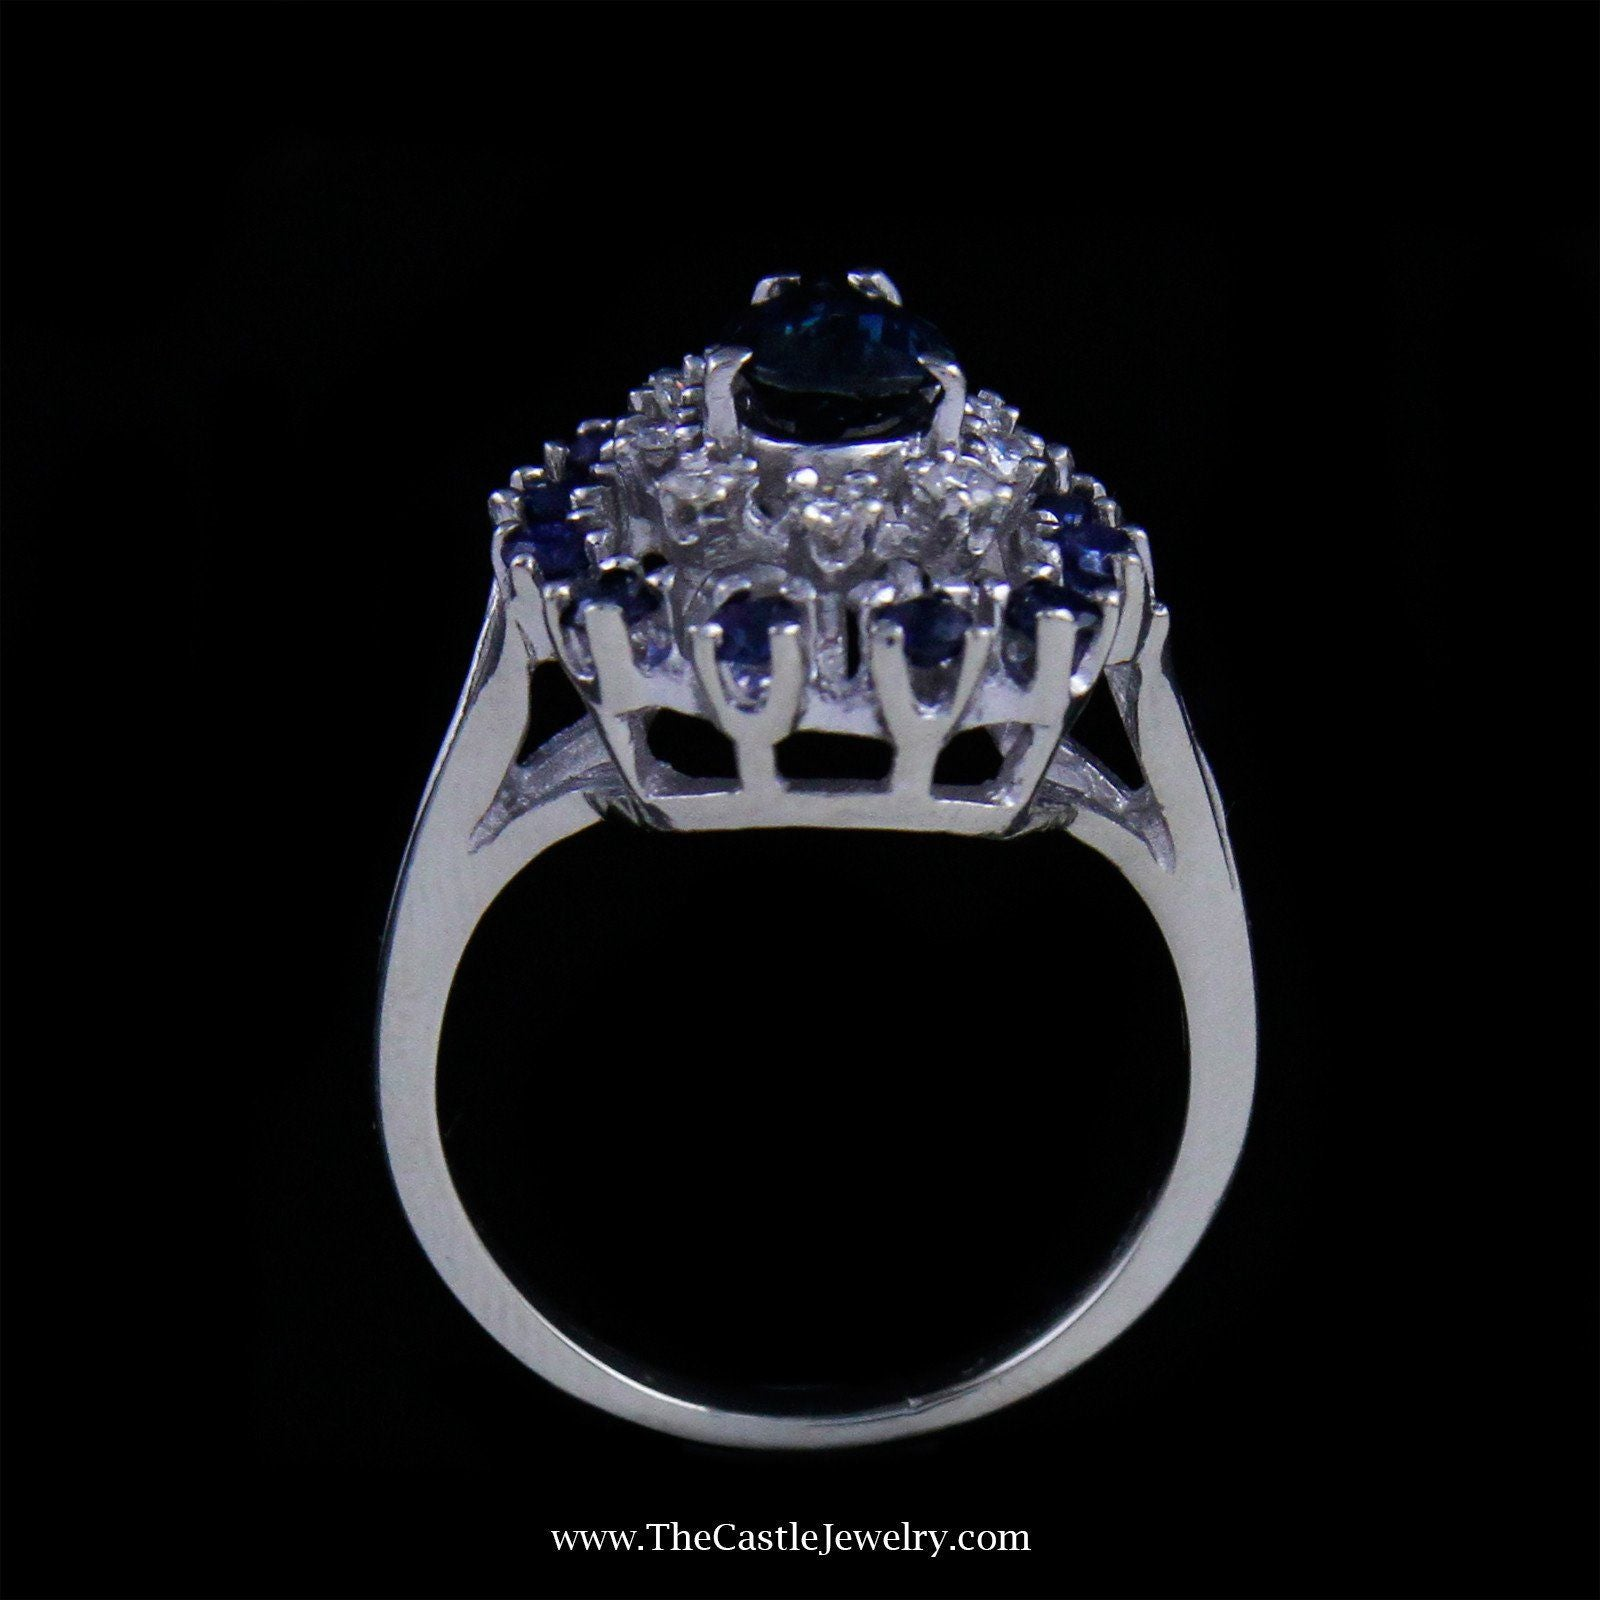 Pear Shaped Sapphire and Diamond Cocktail Ring in 14K White Gold-1